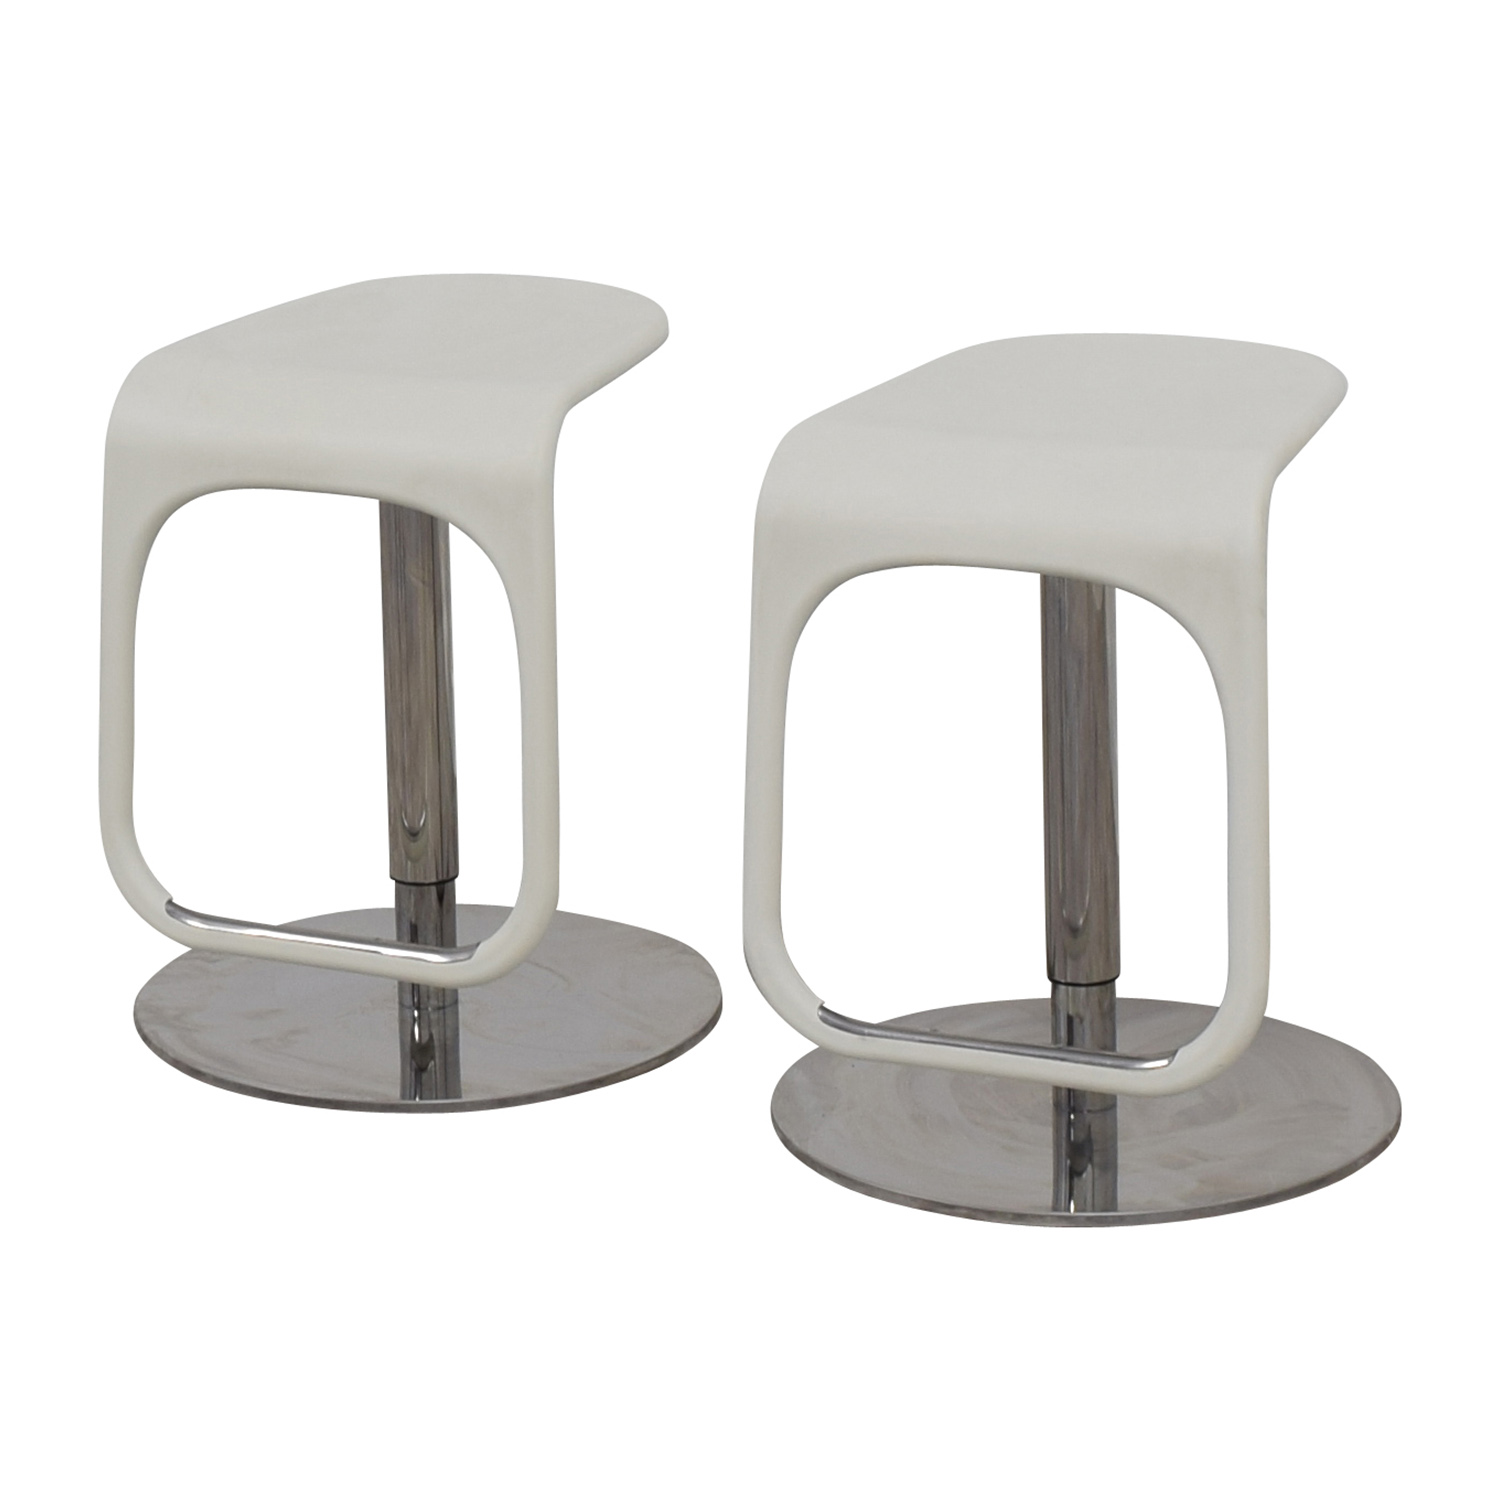 58 off ikea ikea white modern bar stools chairs. Black Bedroom Furniture Sets. Home Design Ideas